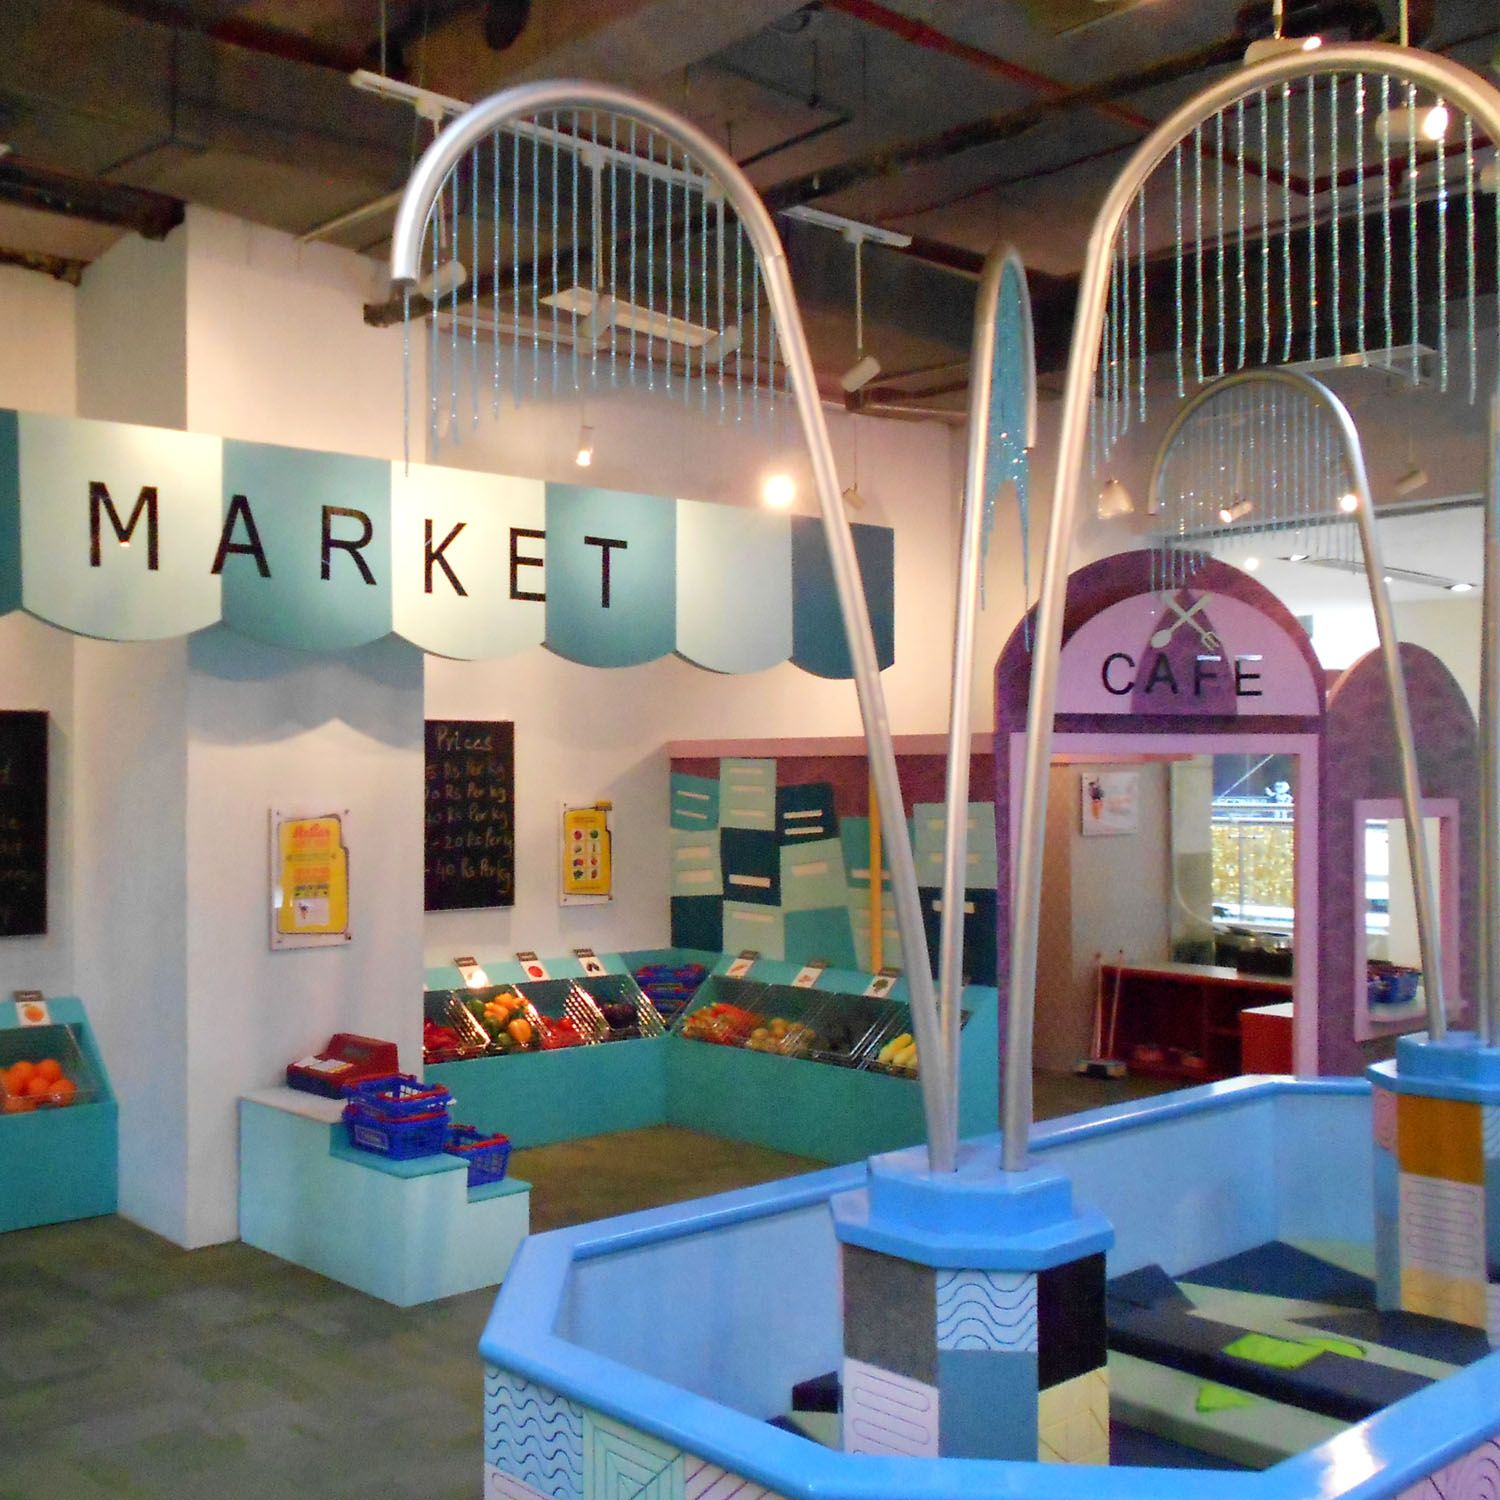 Live it soft play 0 3 learning area stellar childrens for Indoor playground design ideas